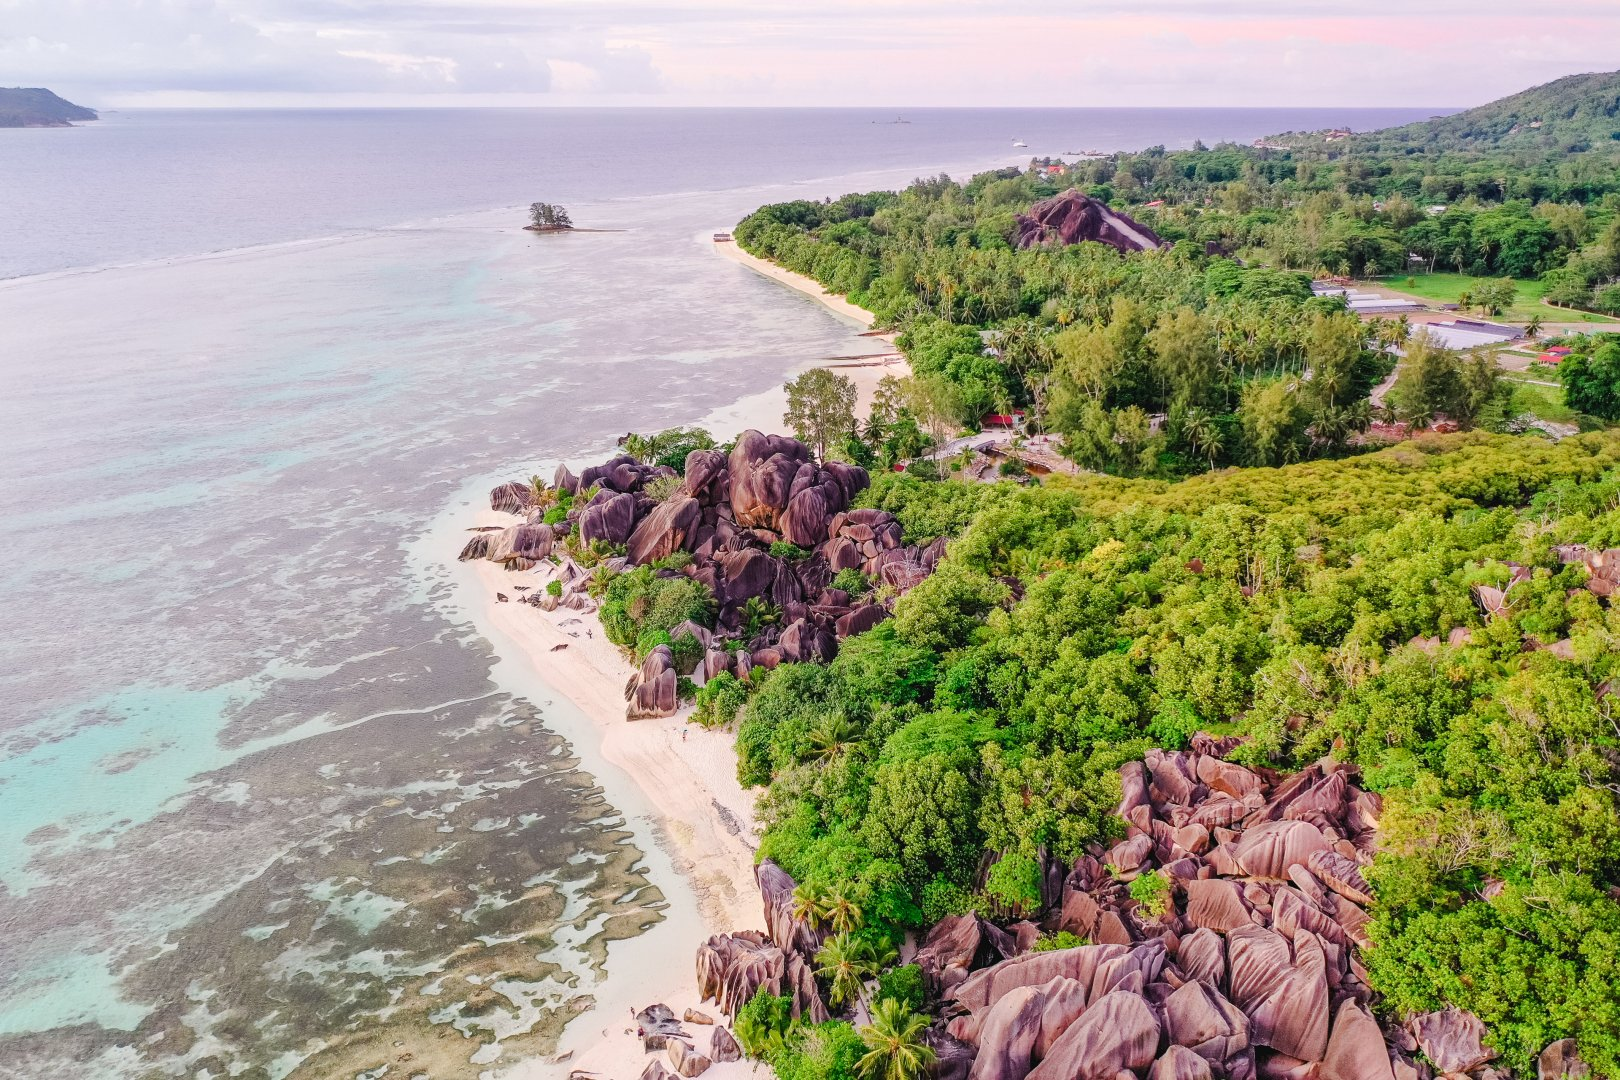 Body of water Coast Natural landscape Sea Vegetation Shore Coastal and oceanic landforms Beach Promontory Headland Water Bay Cliff Ocean Sky Tourism Landscape Rock Aerial photography Cape Terrain Klippe Tropics Vacation Inlet River Hill Bank National park Cove